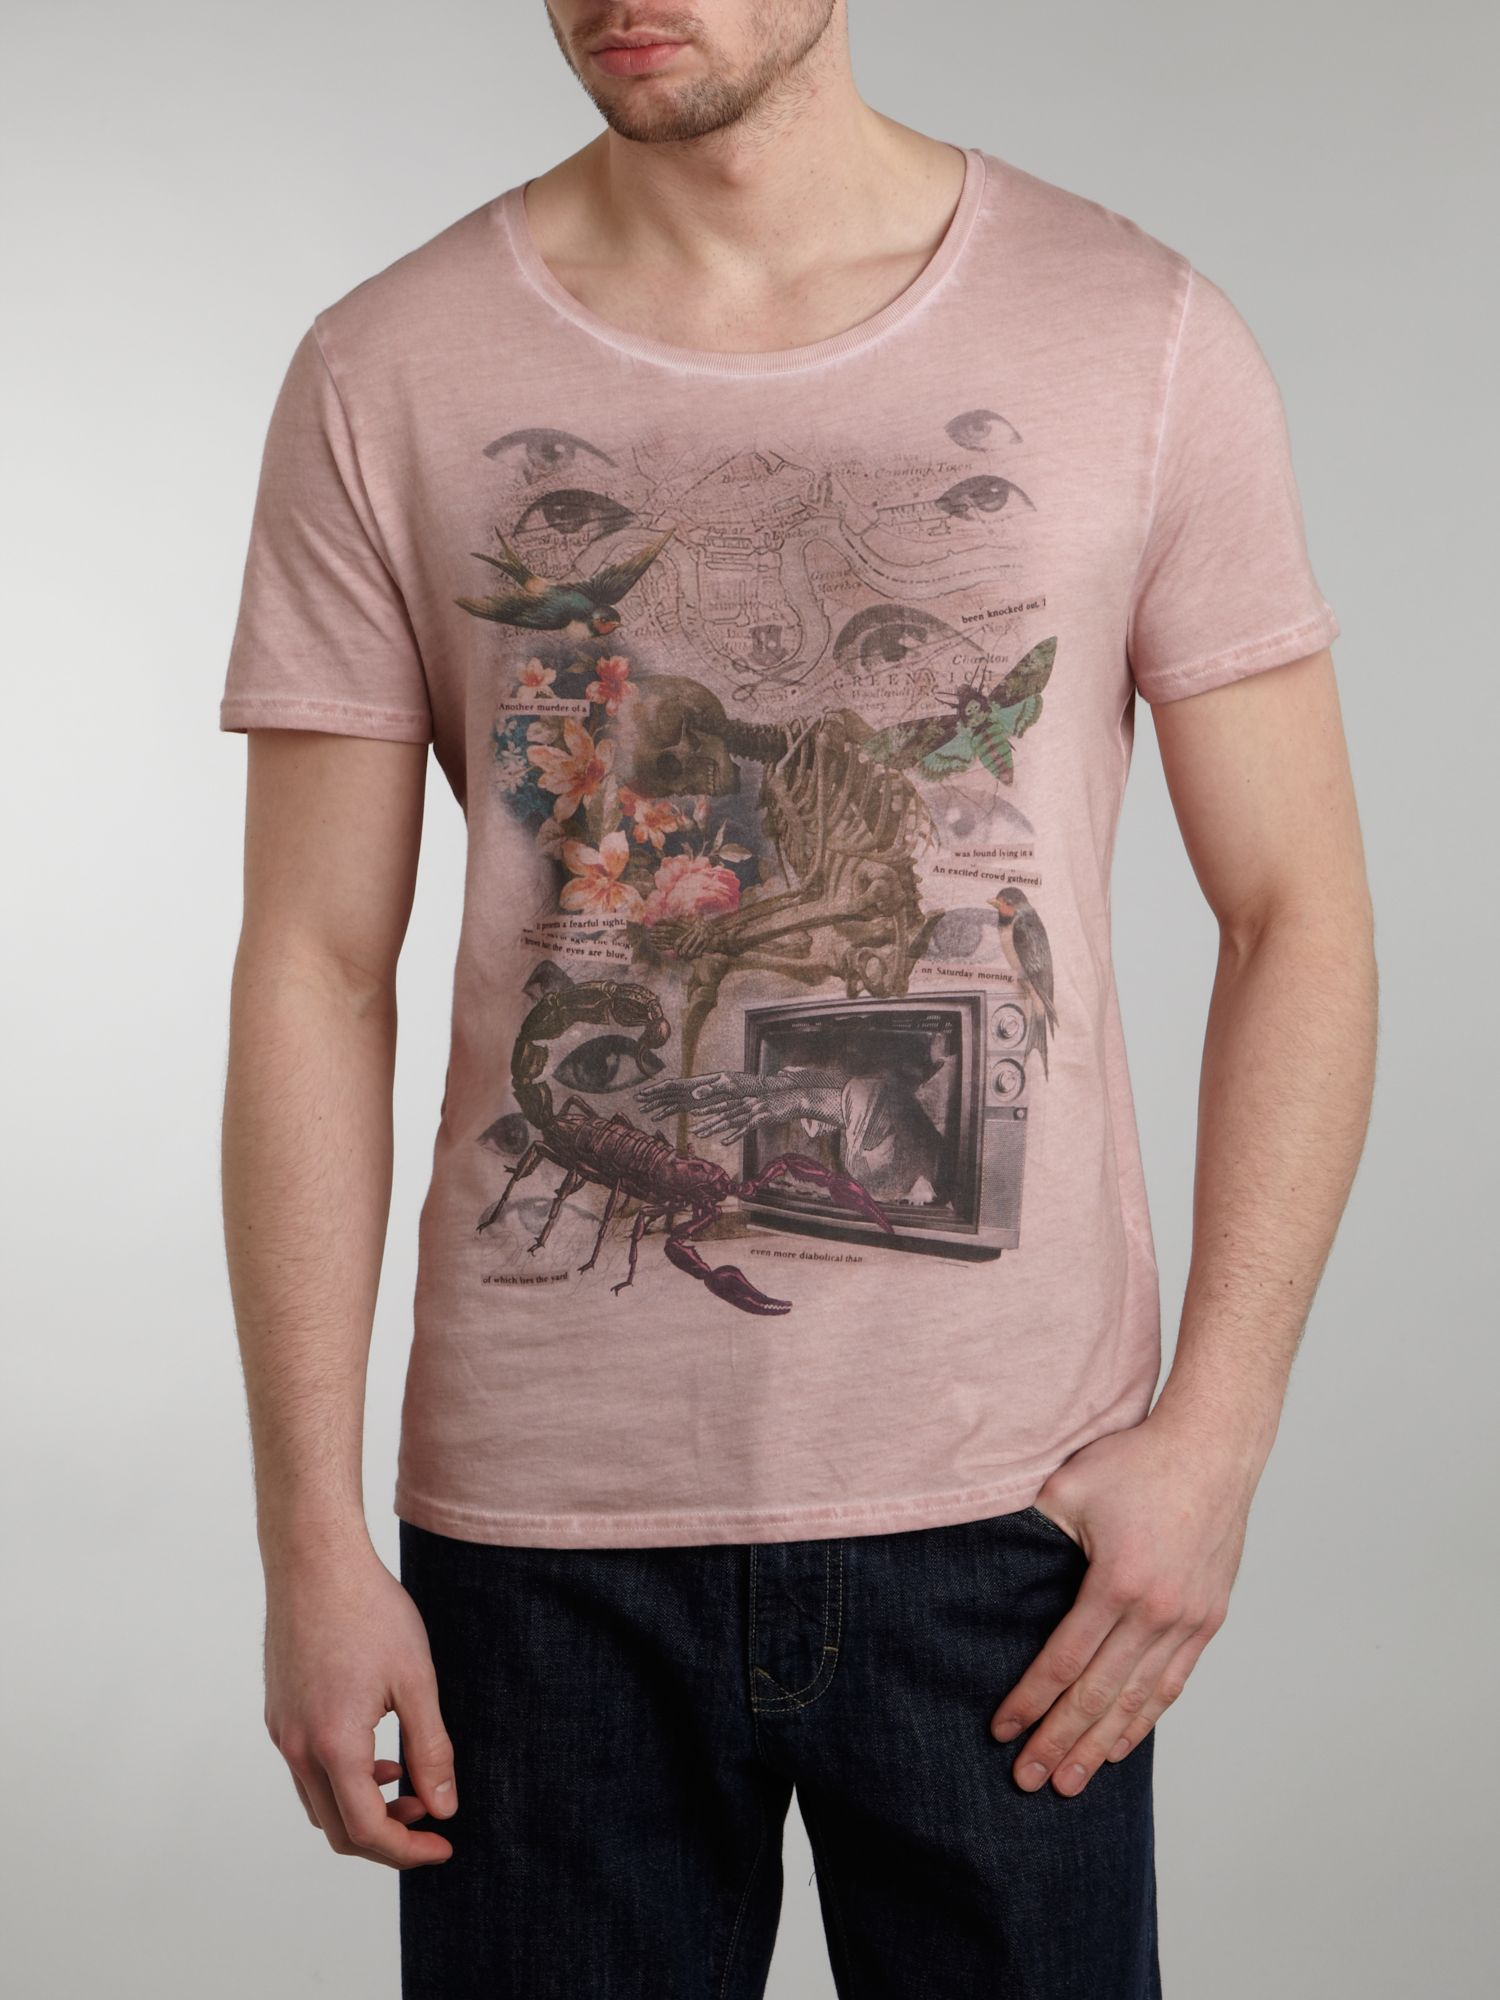 Label Lab Cotton Collage 2 Graphic Tshirt in Light Pink (Pink) for Men